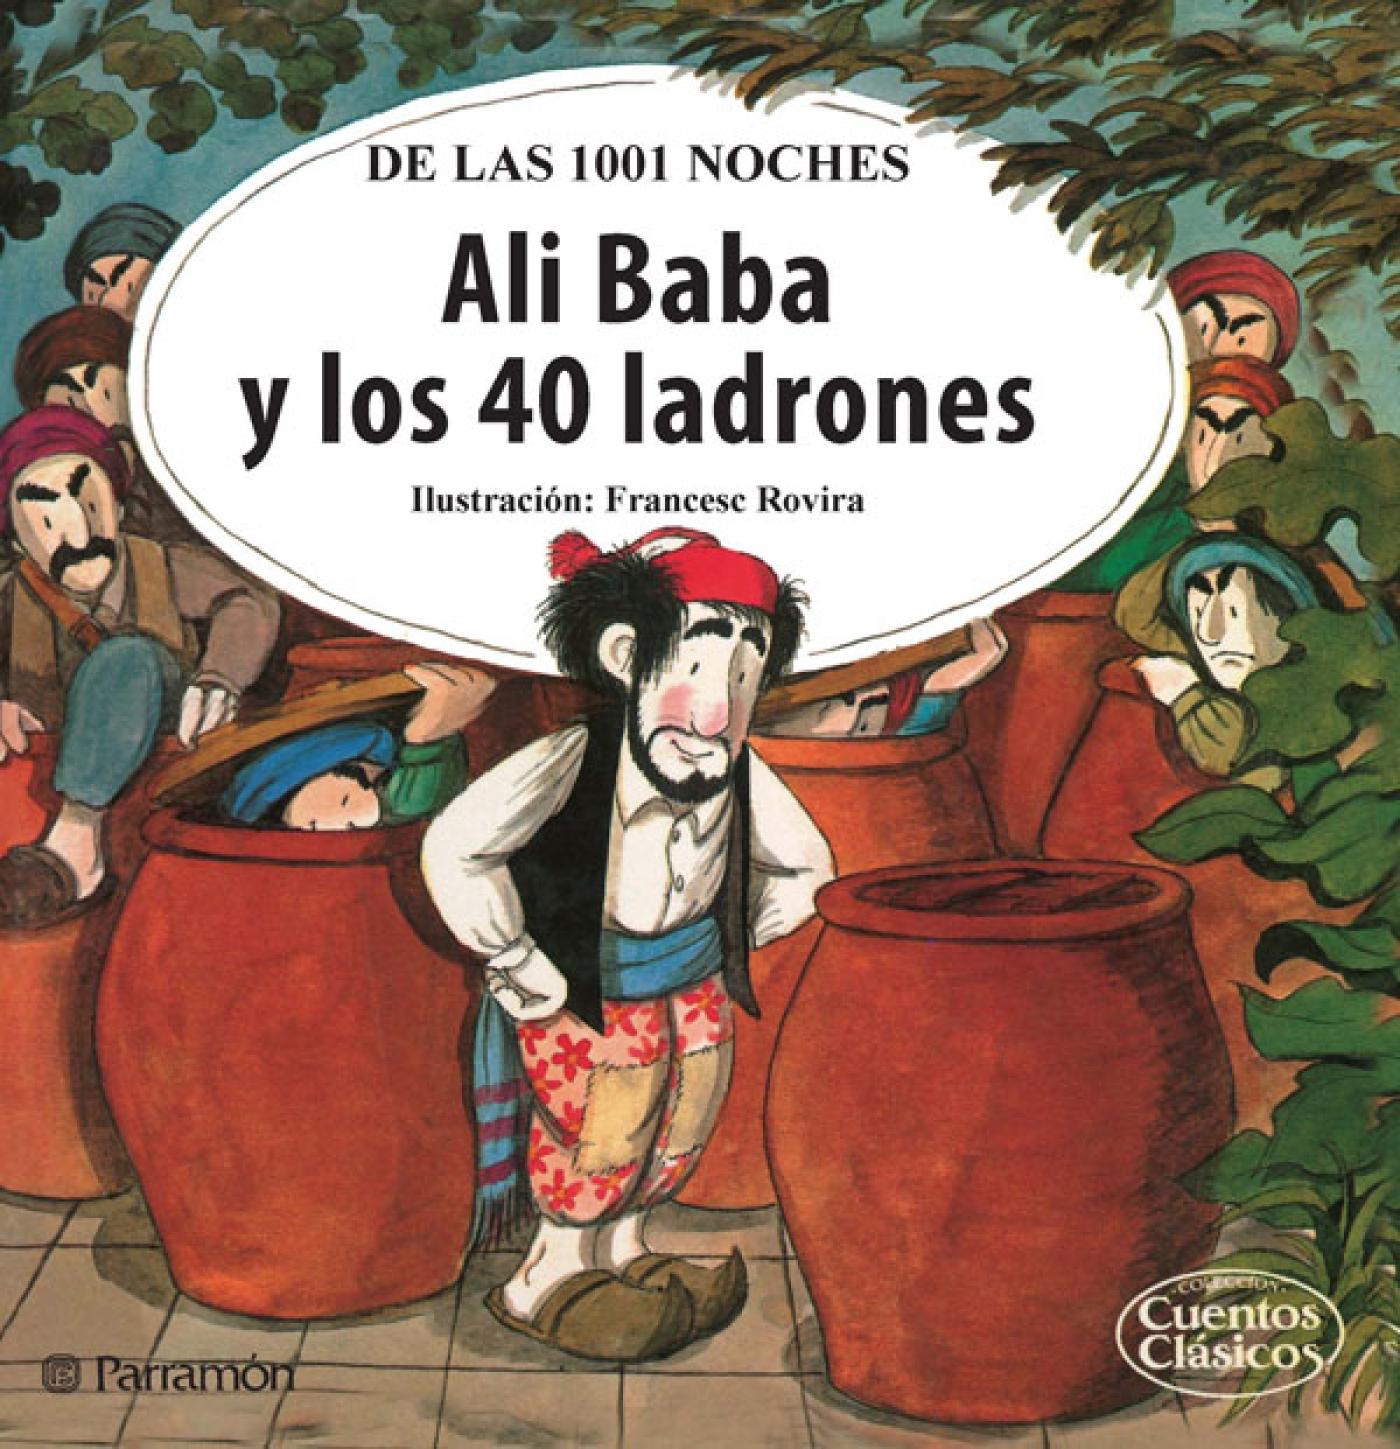 Copiar Libros De Ibooks A Pc Ali Baba Y Los 40 Ladrones Por Paidotribo Ed And Francesc